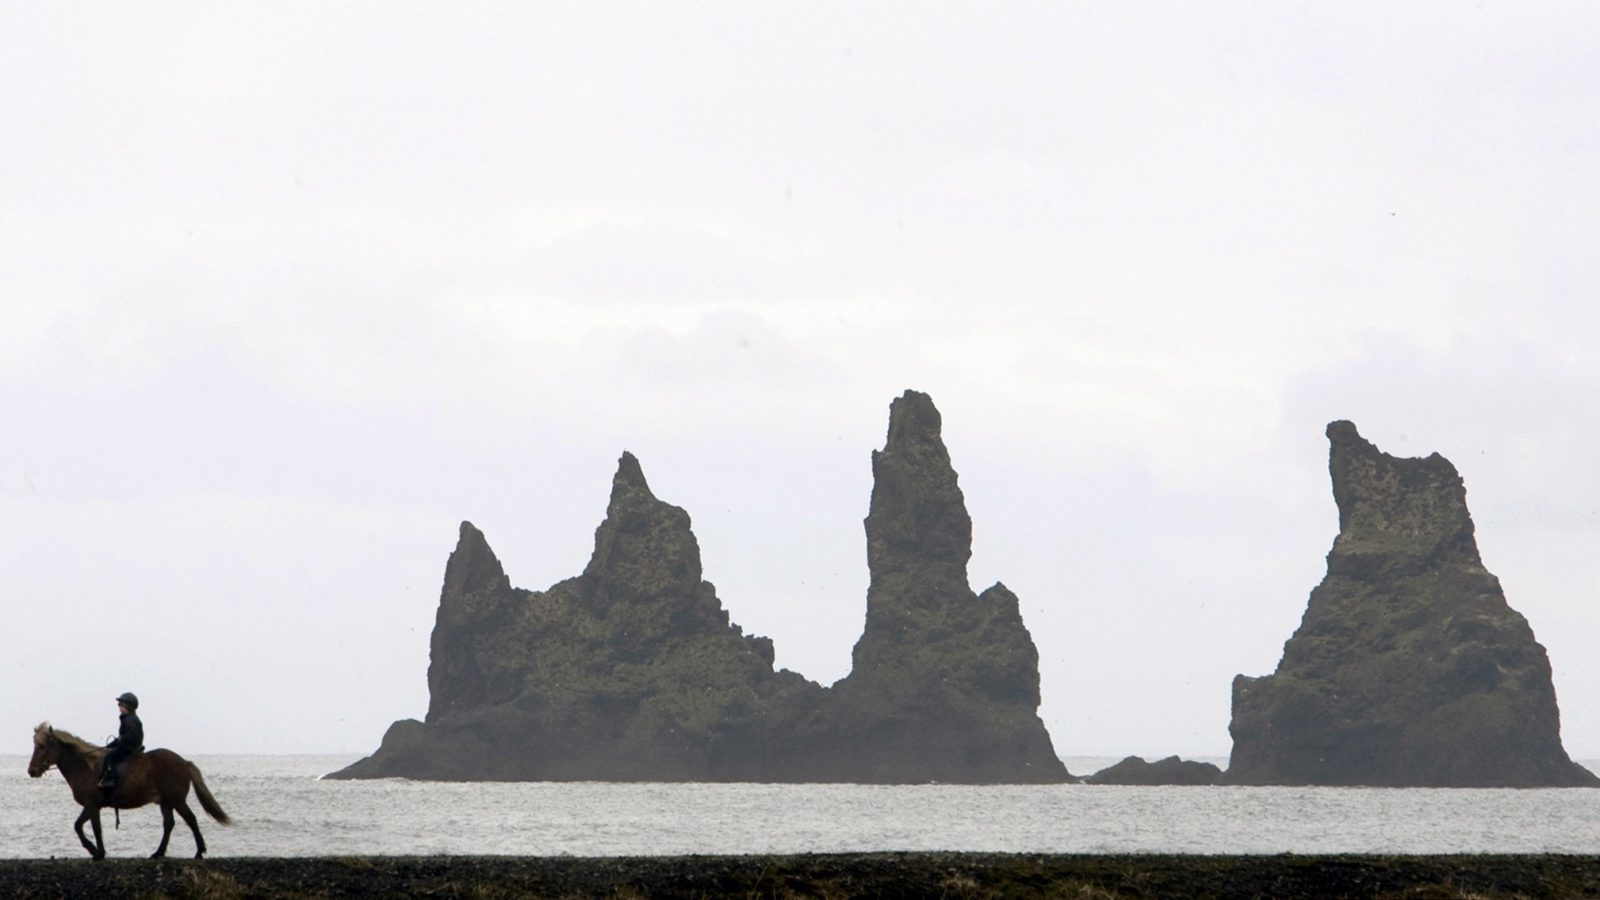 A horseback rider passes the Reynisdrangur rocks near the town of Vik on Iceland's southern coast May 10, 2008. REUTERS/Bob Strong (ICELAND) - RTX5K1F